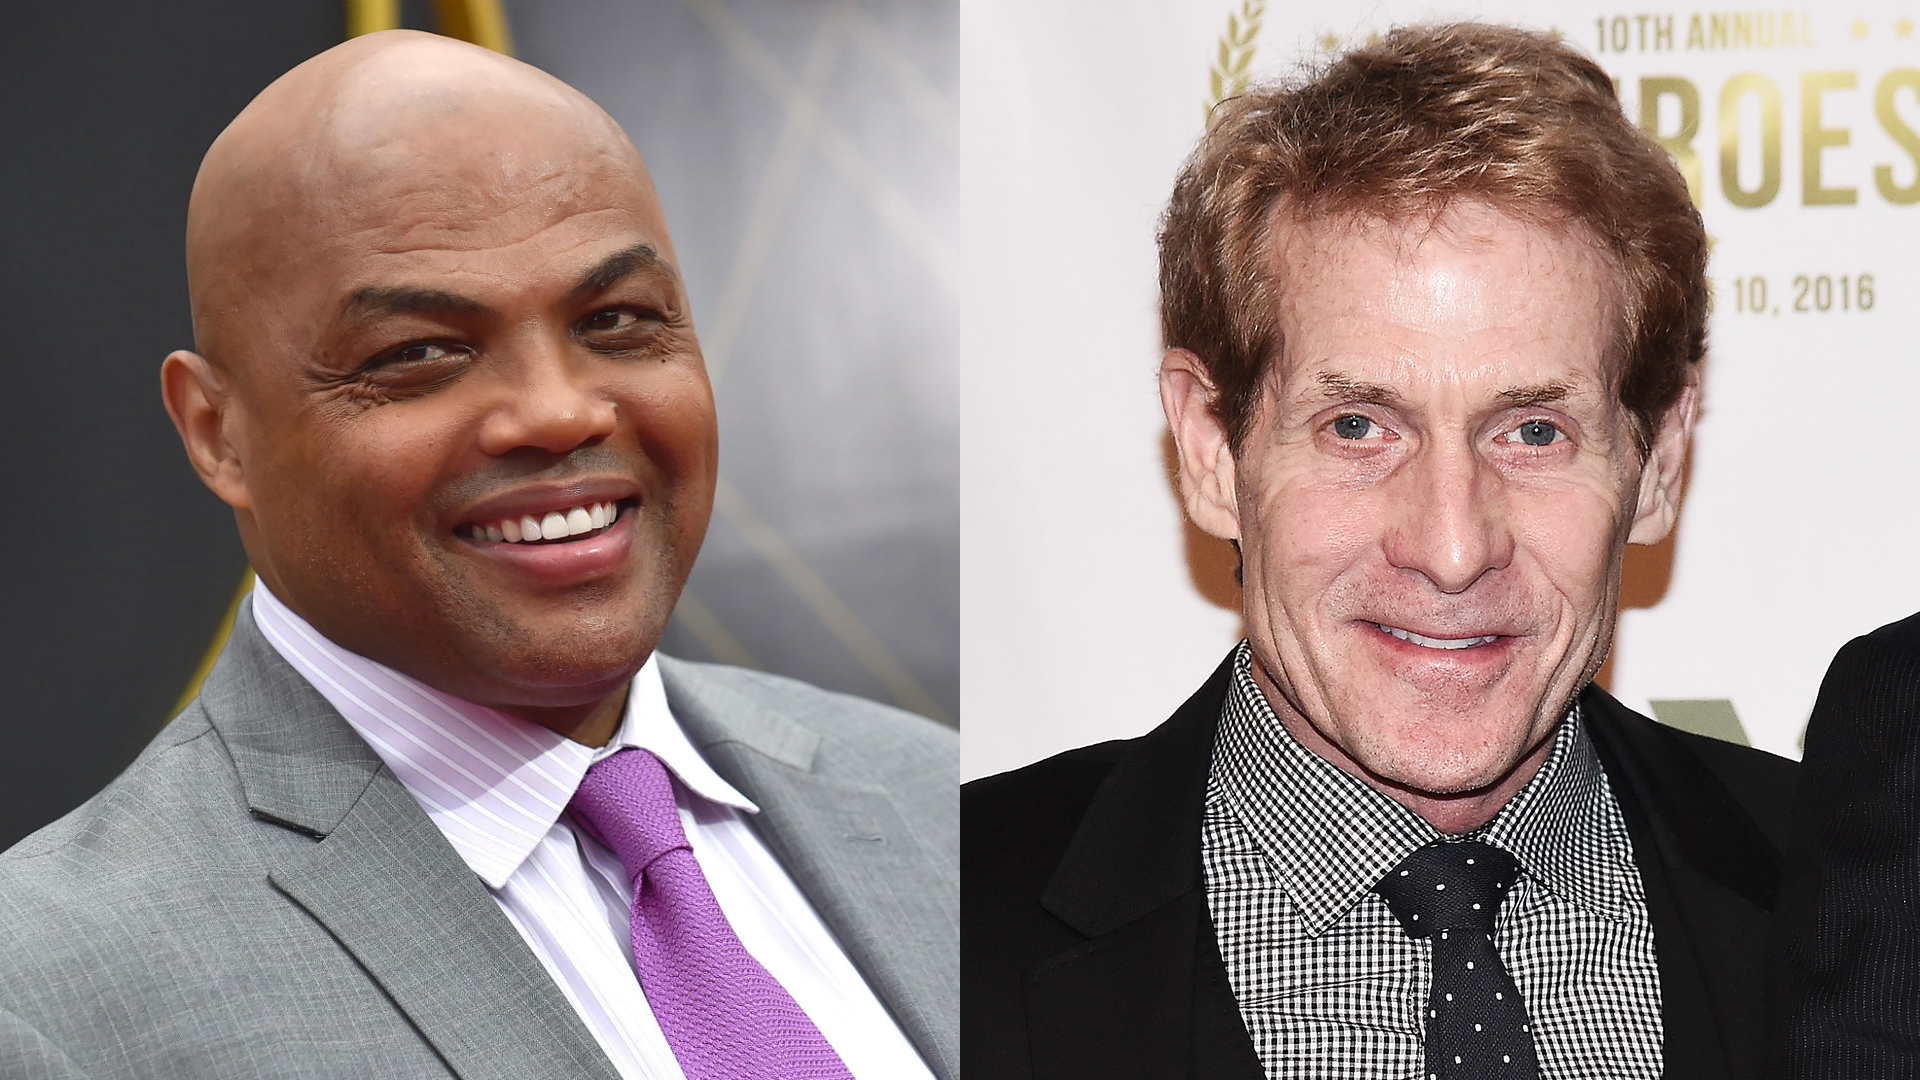 Charles Barkley continues his feud with 'punk ass' Skip Bayless 1